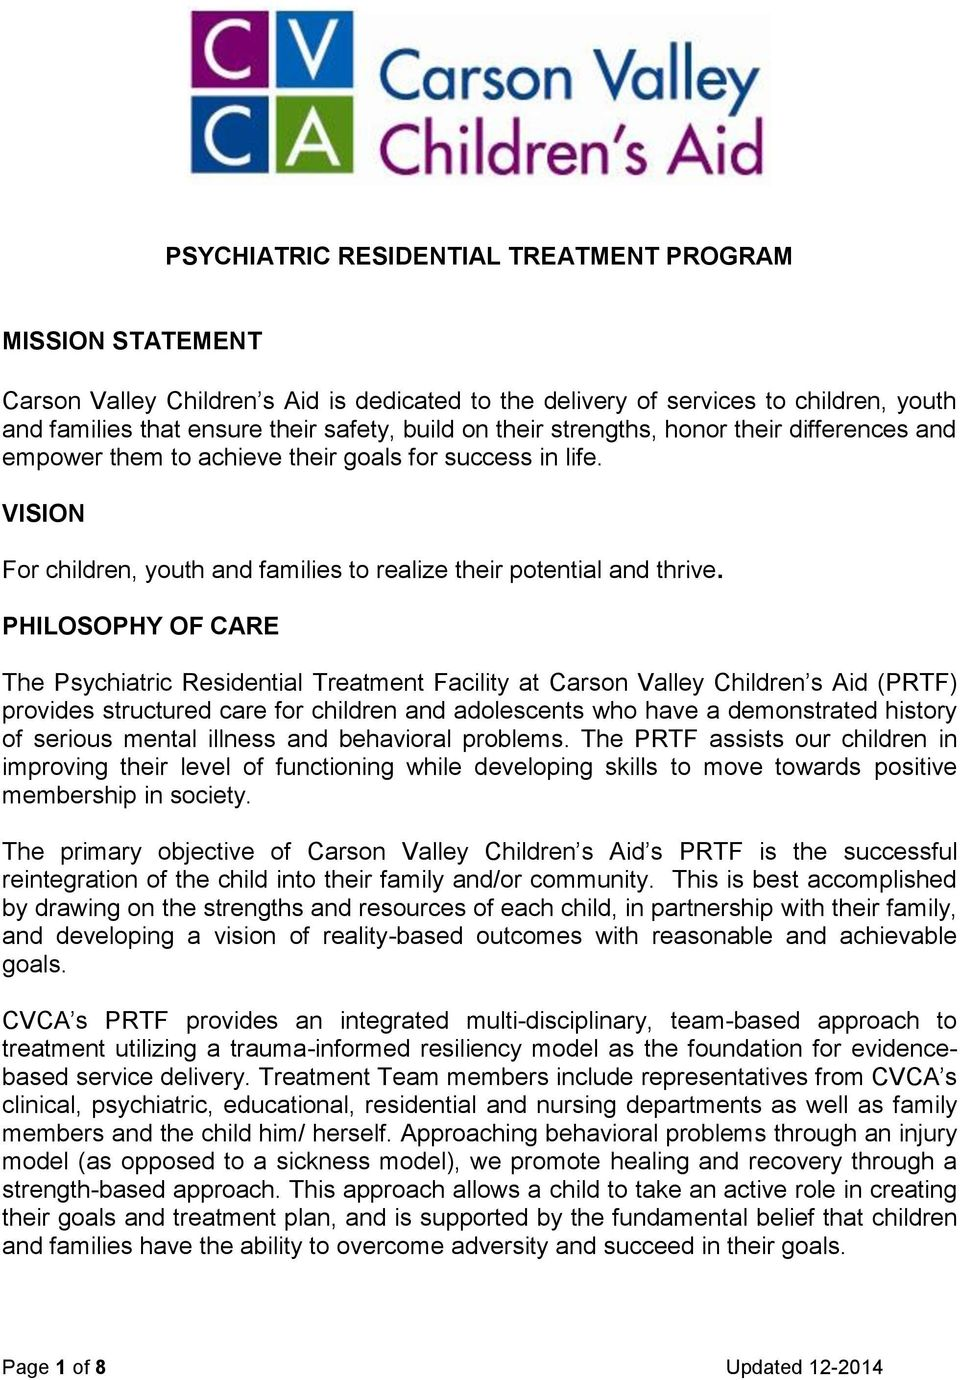 PHILOSOPHY OF CARE The Psychiatric Residential Treatment Facility at Carson Valley Children s Aid (PRTF) provides structured care for children and adolescents who have a demonstrated history of